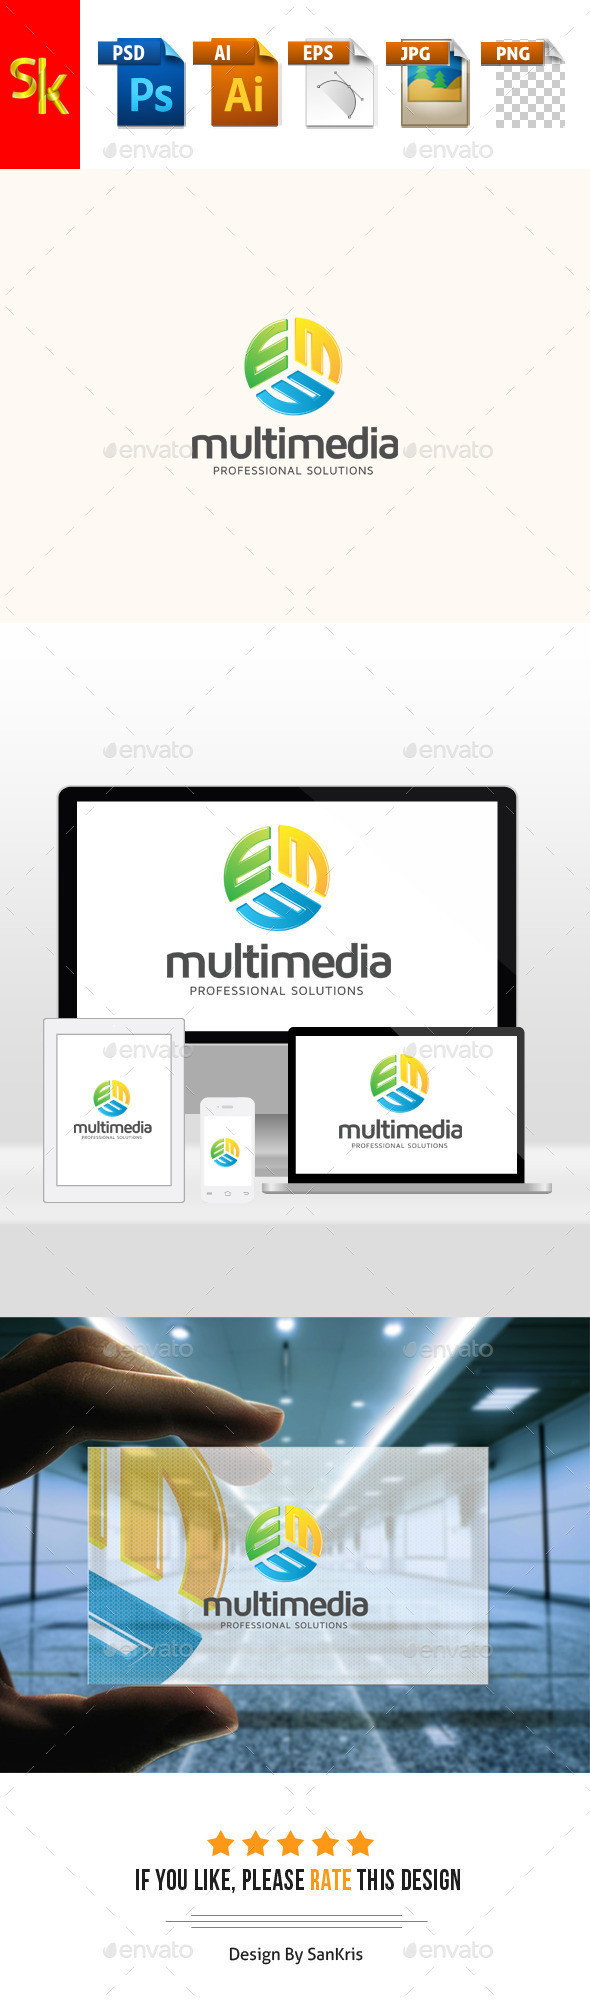 Multimedia solutions preview